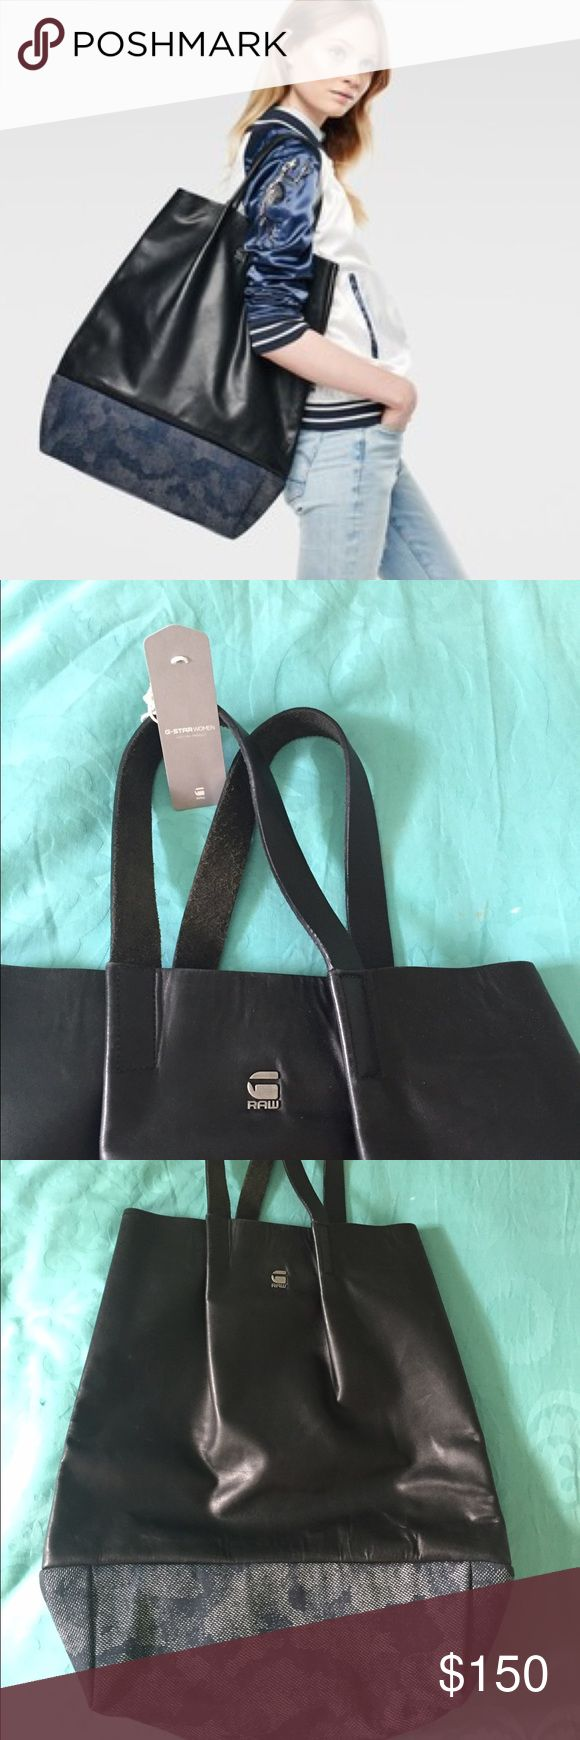 G Star Raw Shopper Derlil Black Leather Shopper. Brand new with tags. No trades. G-Star Bags Totes